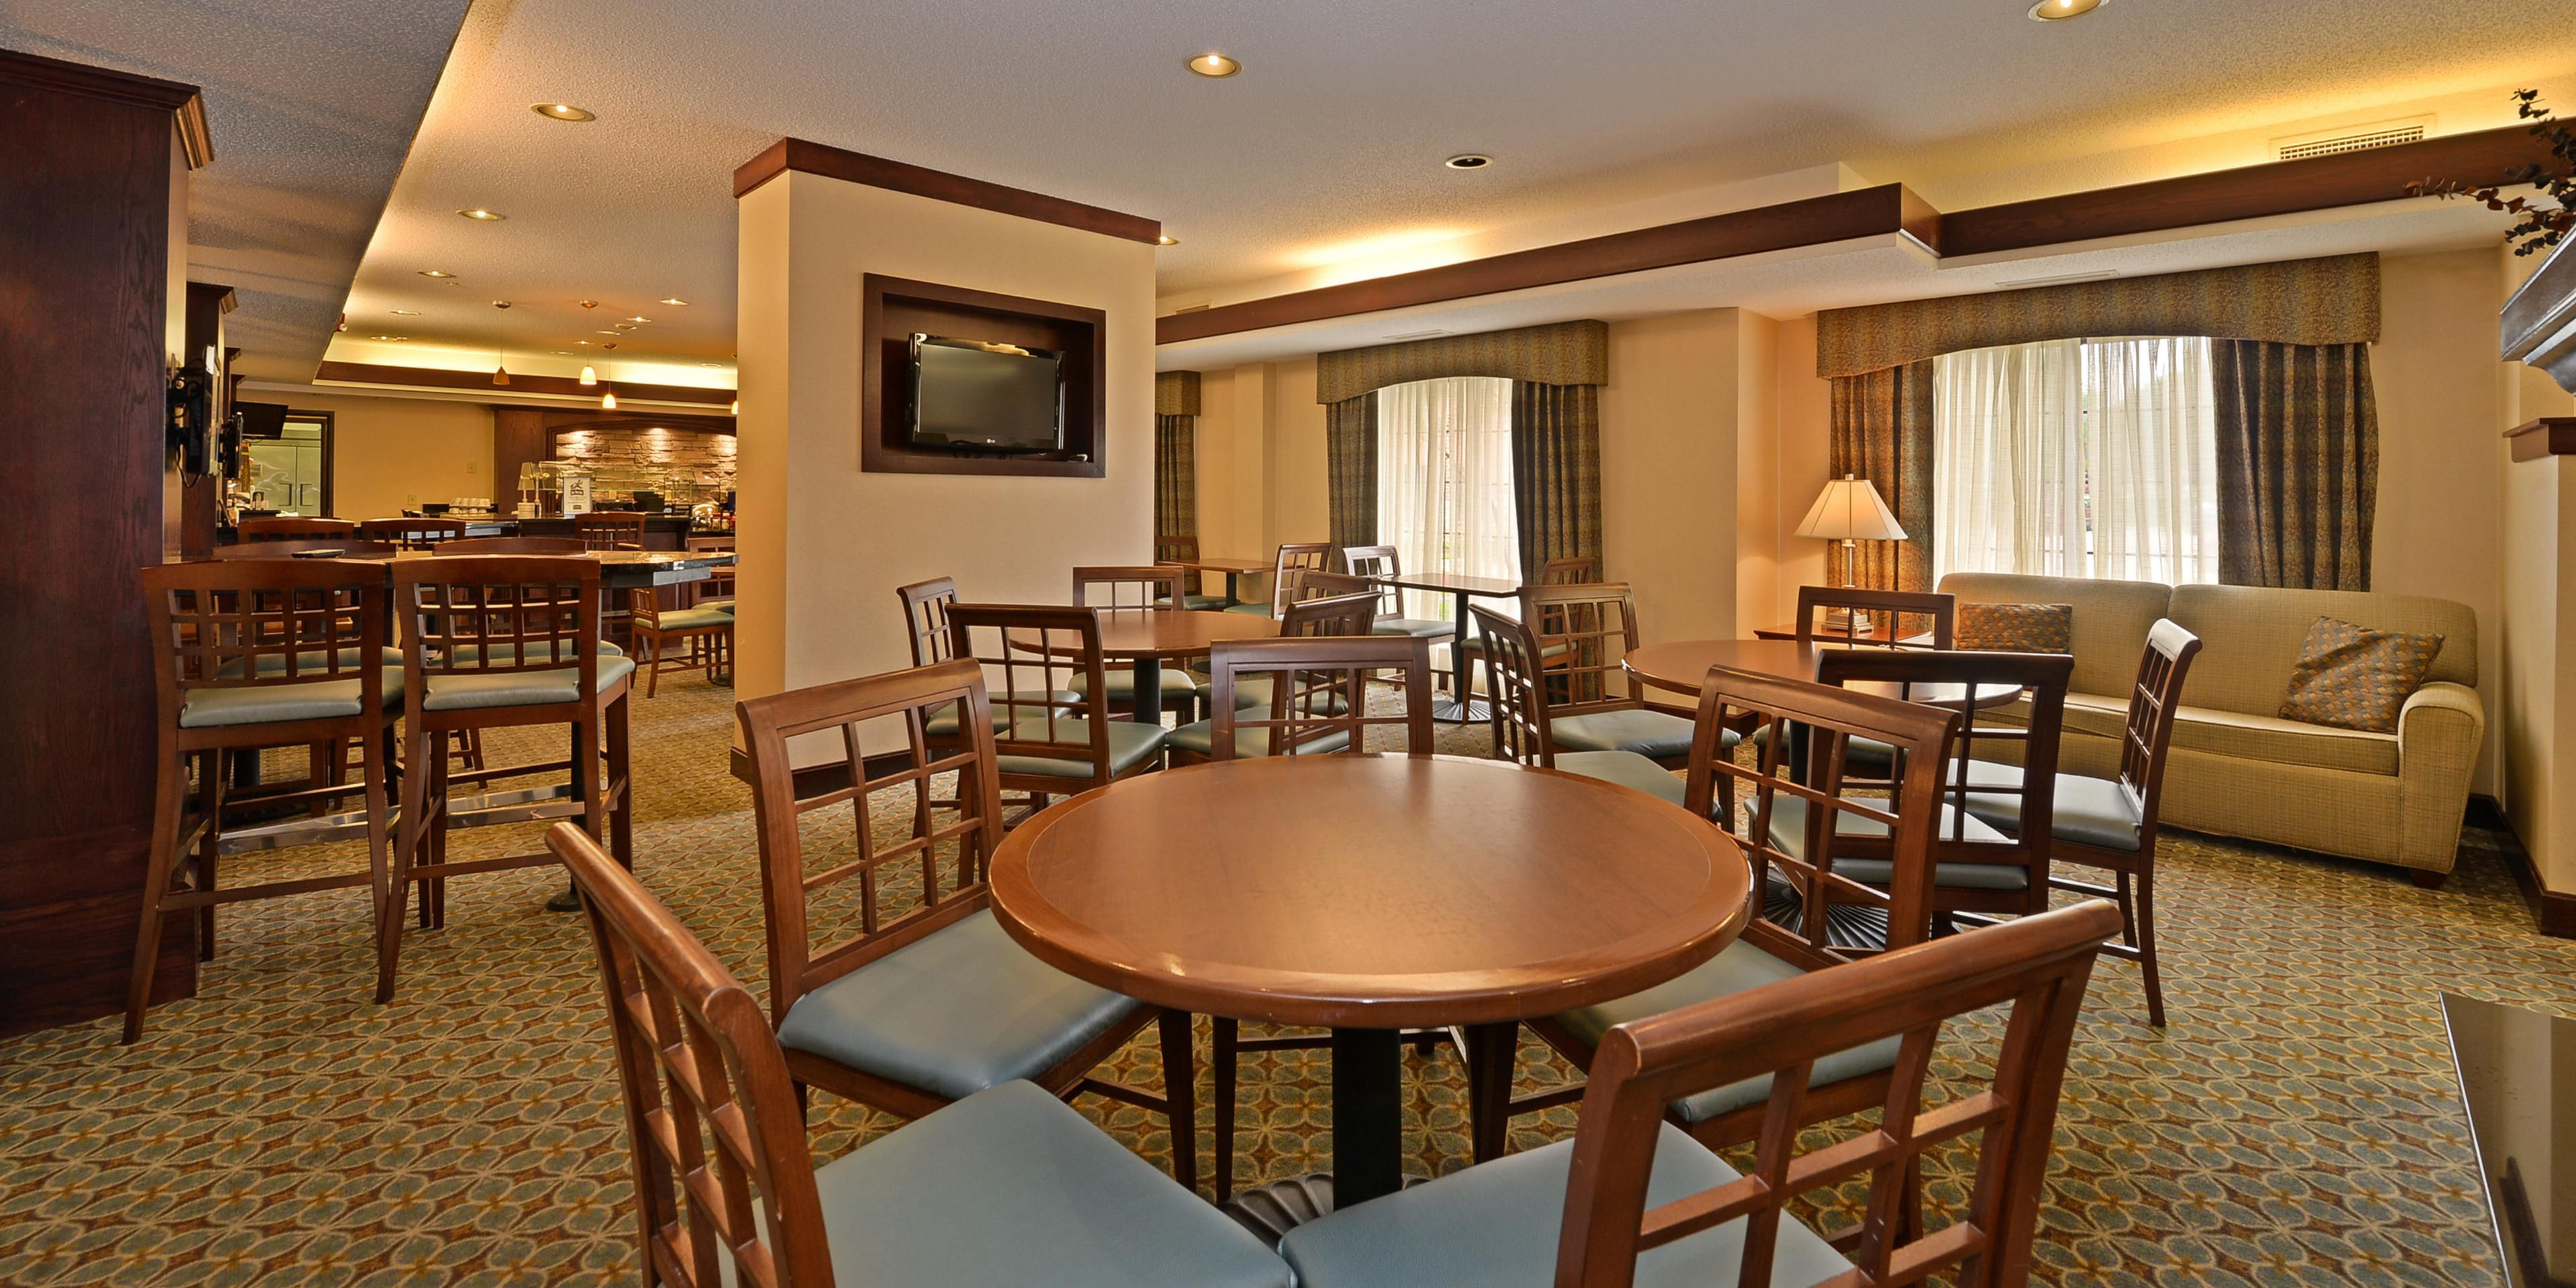 Des Moines Hotels: Staybridge Suites West Des Moines   Extended Stay Hotel  In Des Moines, Iowa